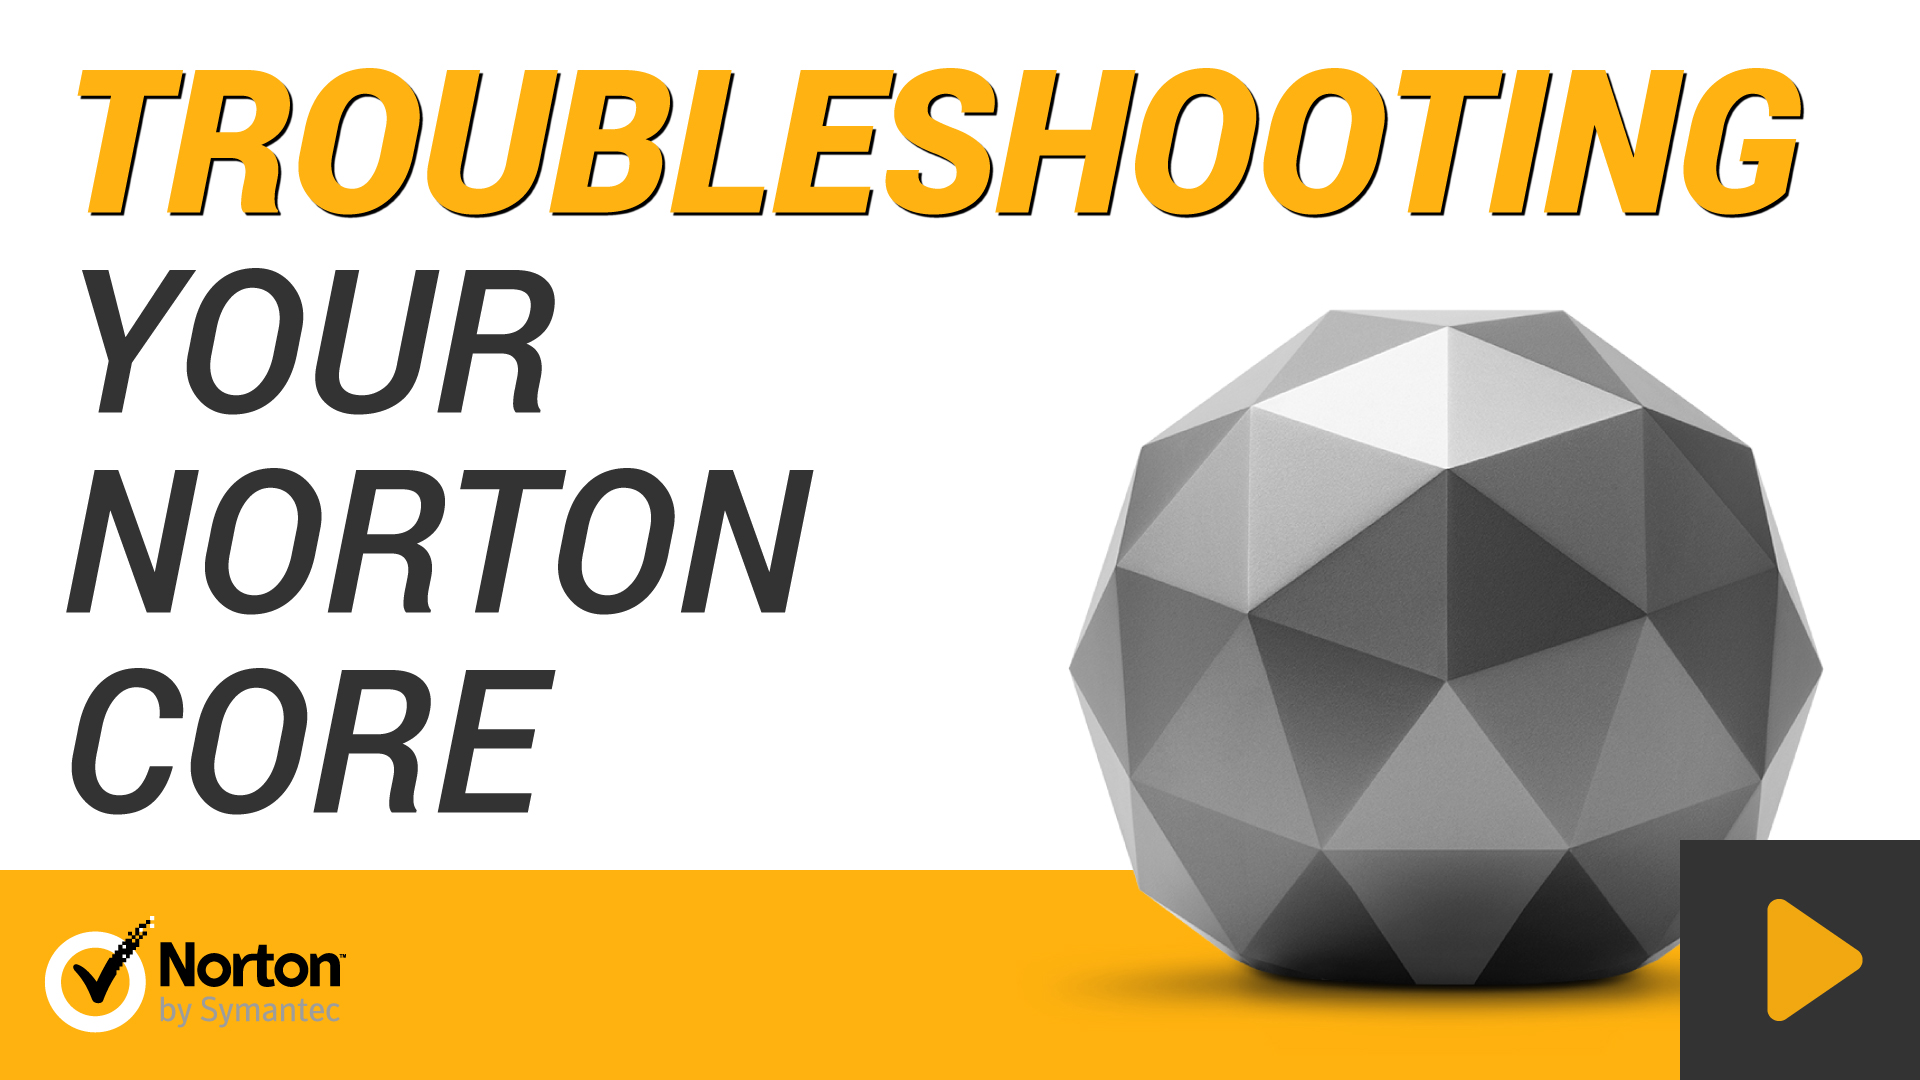 Troubleshoot common problems with Norton Core router